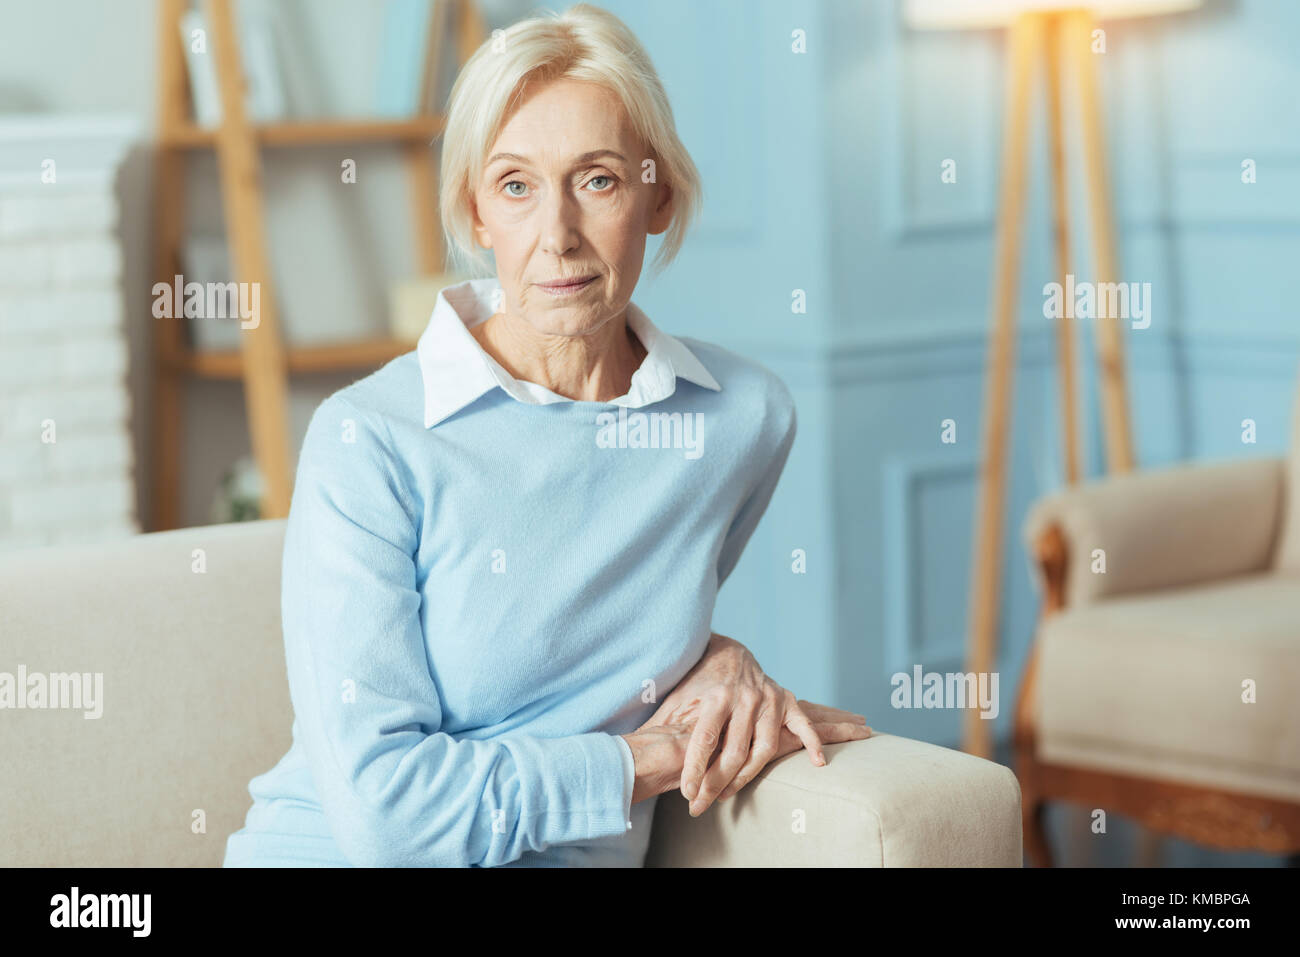 Calm senior woman sitting and waiting for her doctor - Stock Image